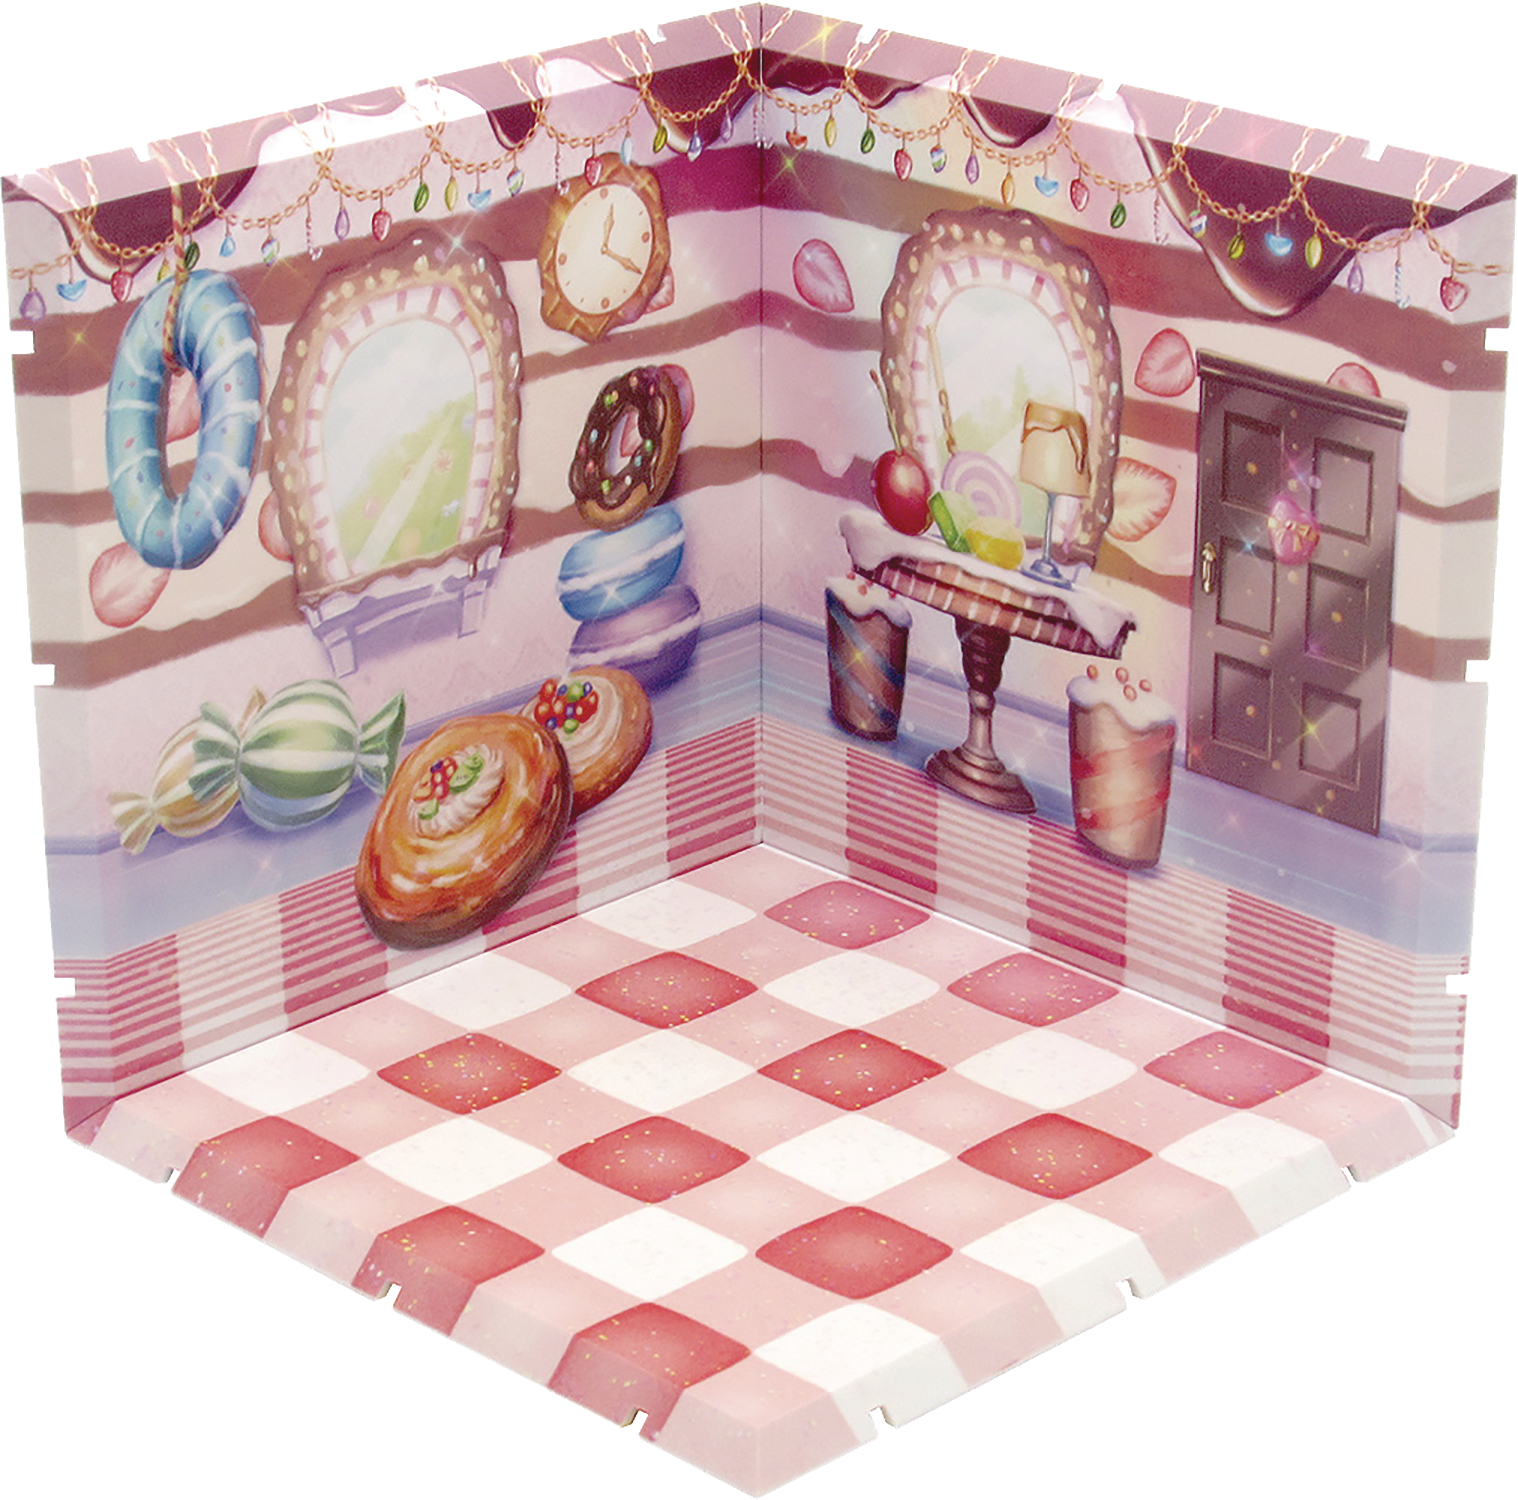 DIORAMANSION 150 CANDY ROOM FIGURE DIORAMA